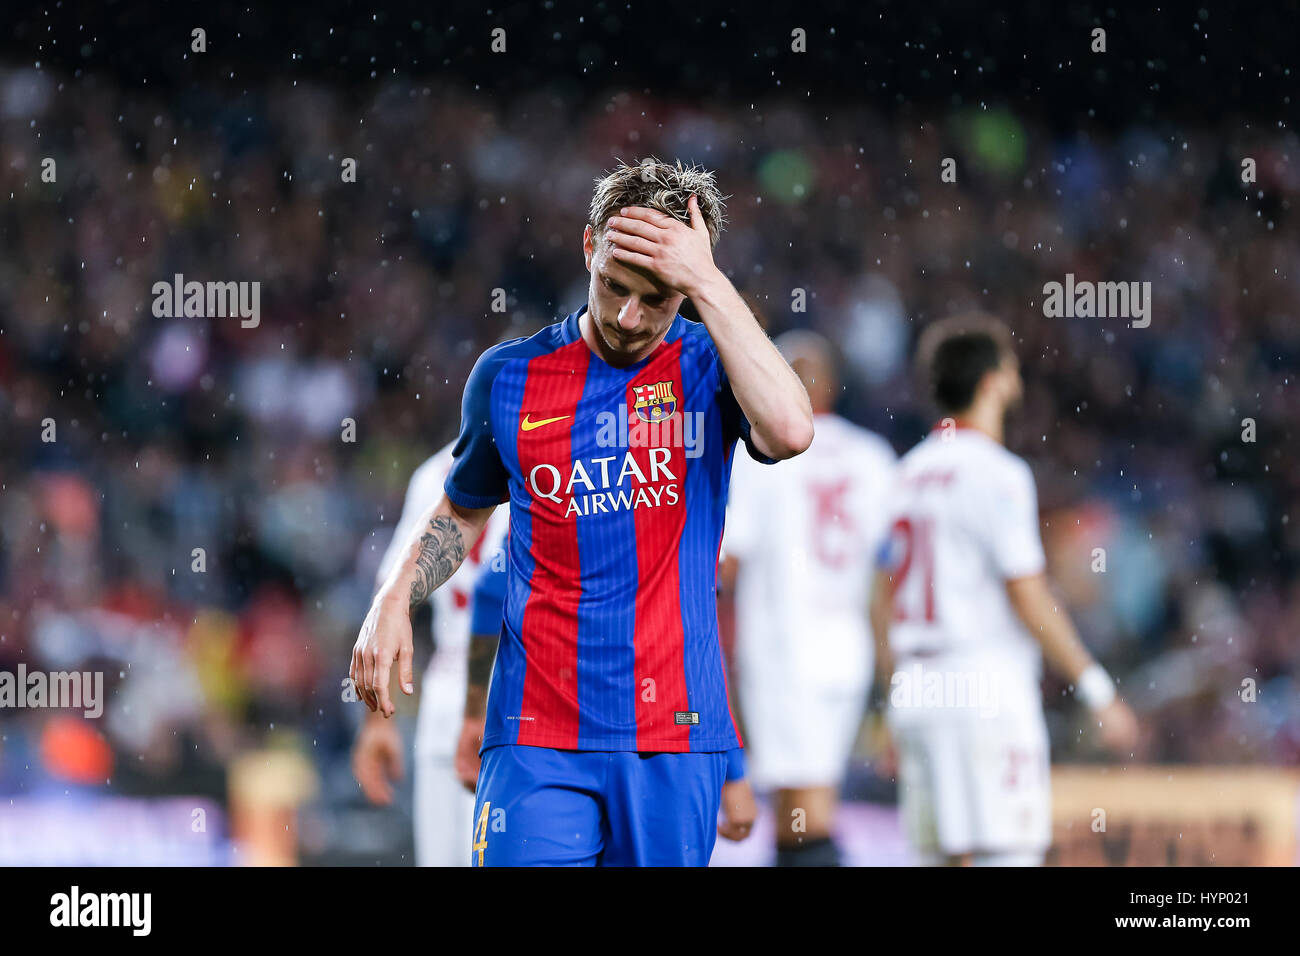 April 5, 2017: Ivan Rakitic during the match between FC Barcelona vs Sevilla, for the round 30 of the Liga Santander, - Stock Image